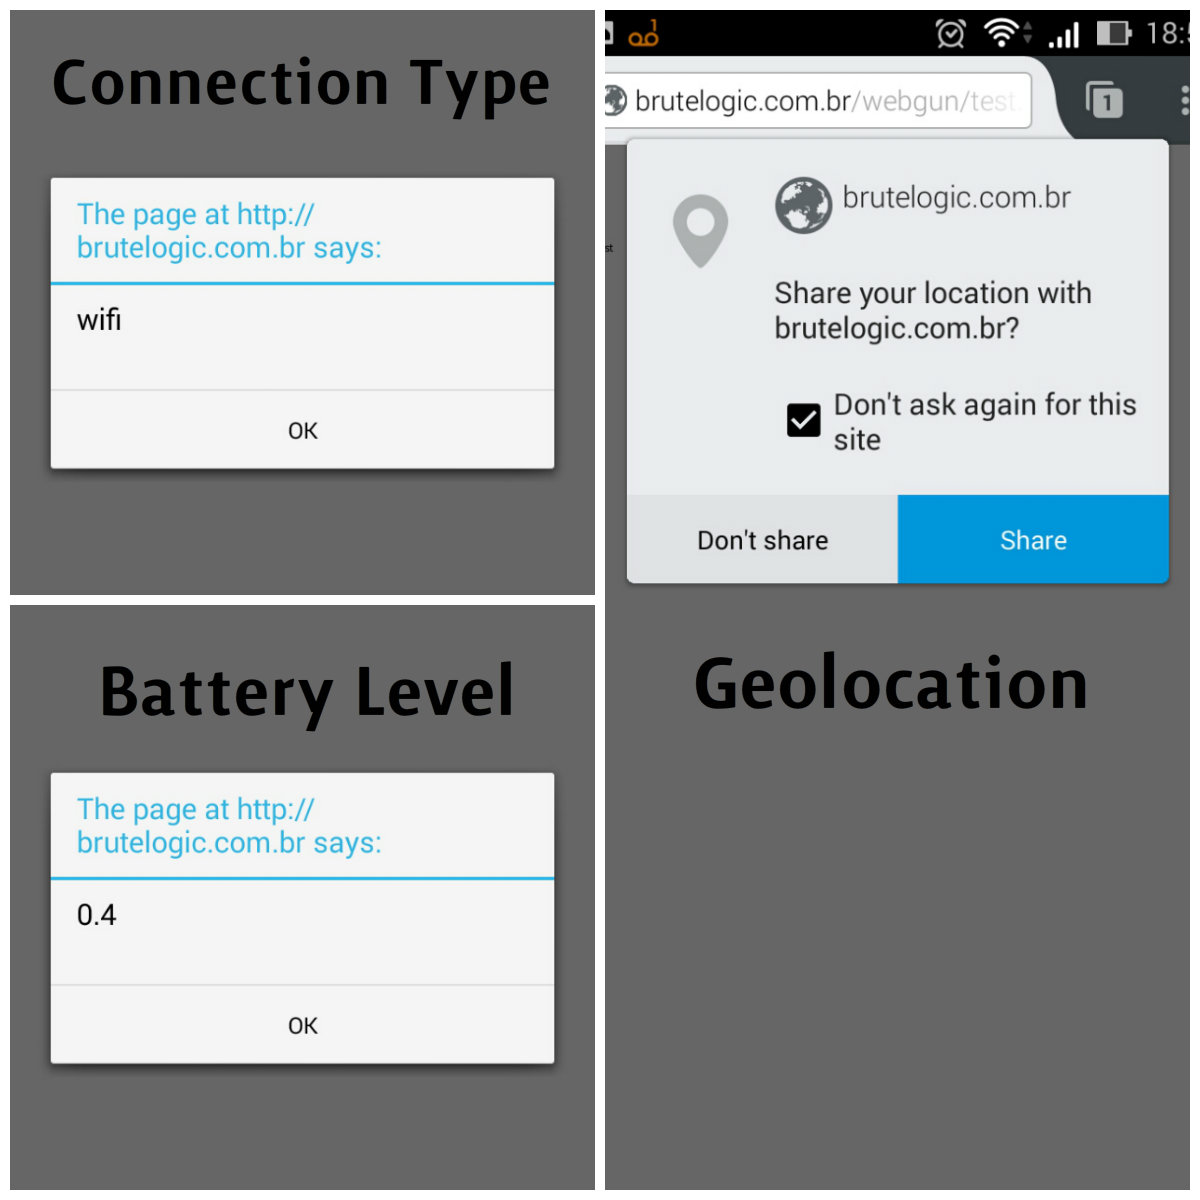 XSS in Mobile Devices - Brute XSS